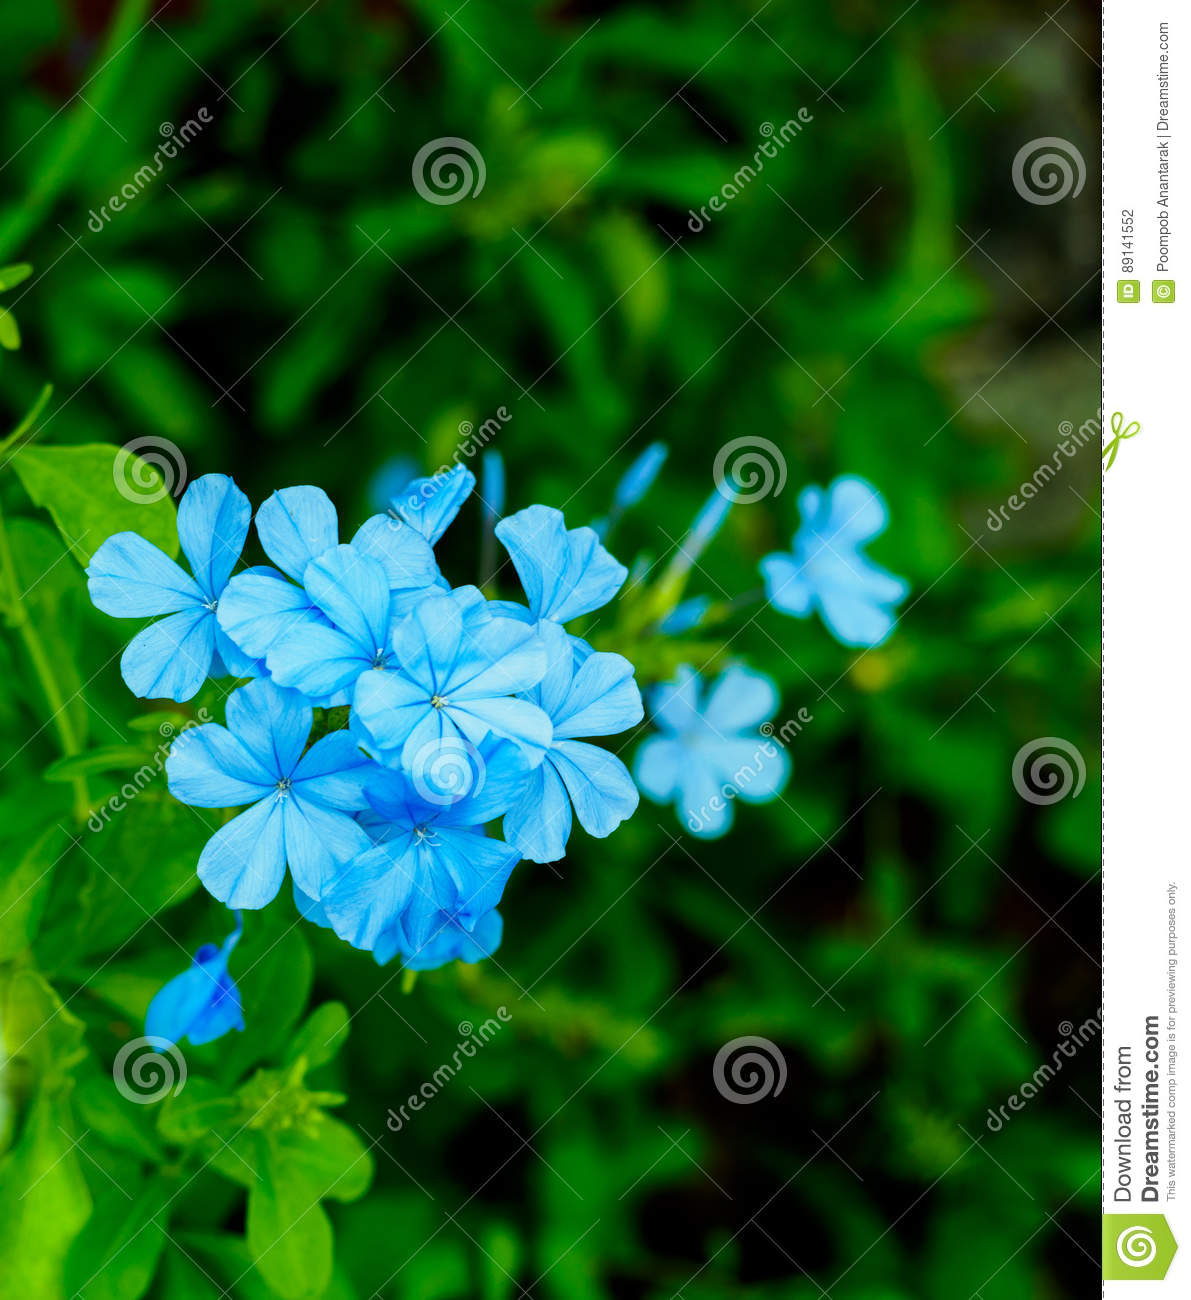 The blooming blue flowers plumbago auriculata stock photo image of download the blooming blue flowers plumbago auriculata stock photo image of lavandulifolium blue izmirmasajfo